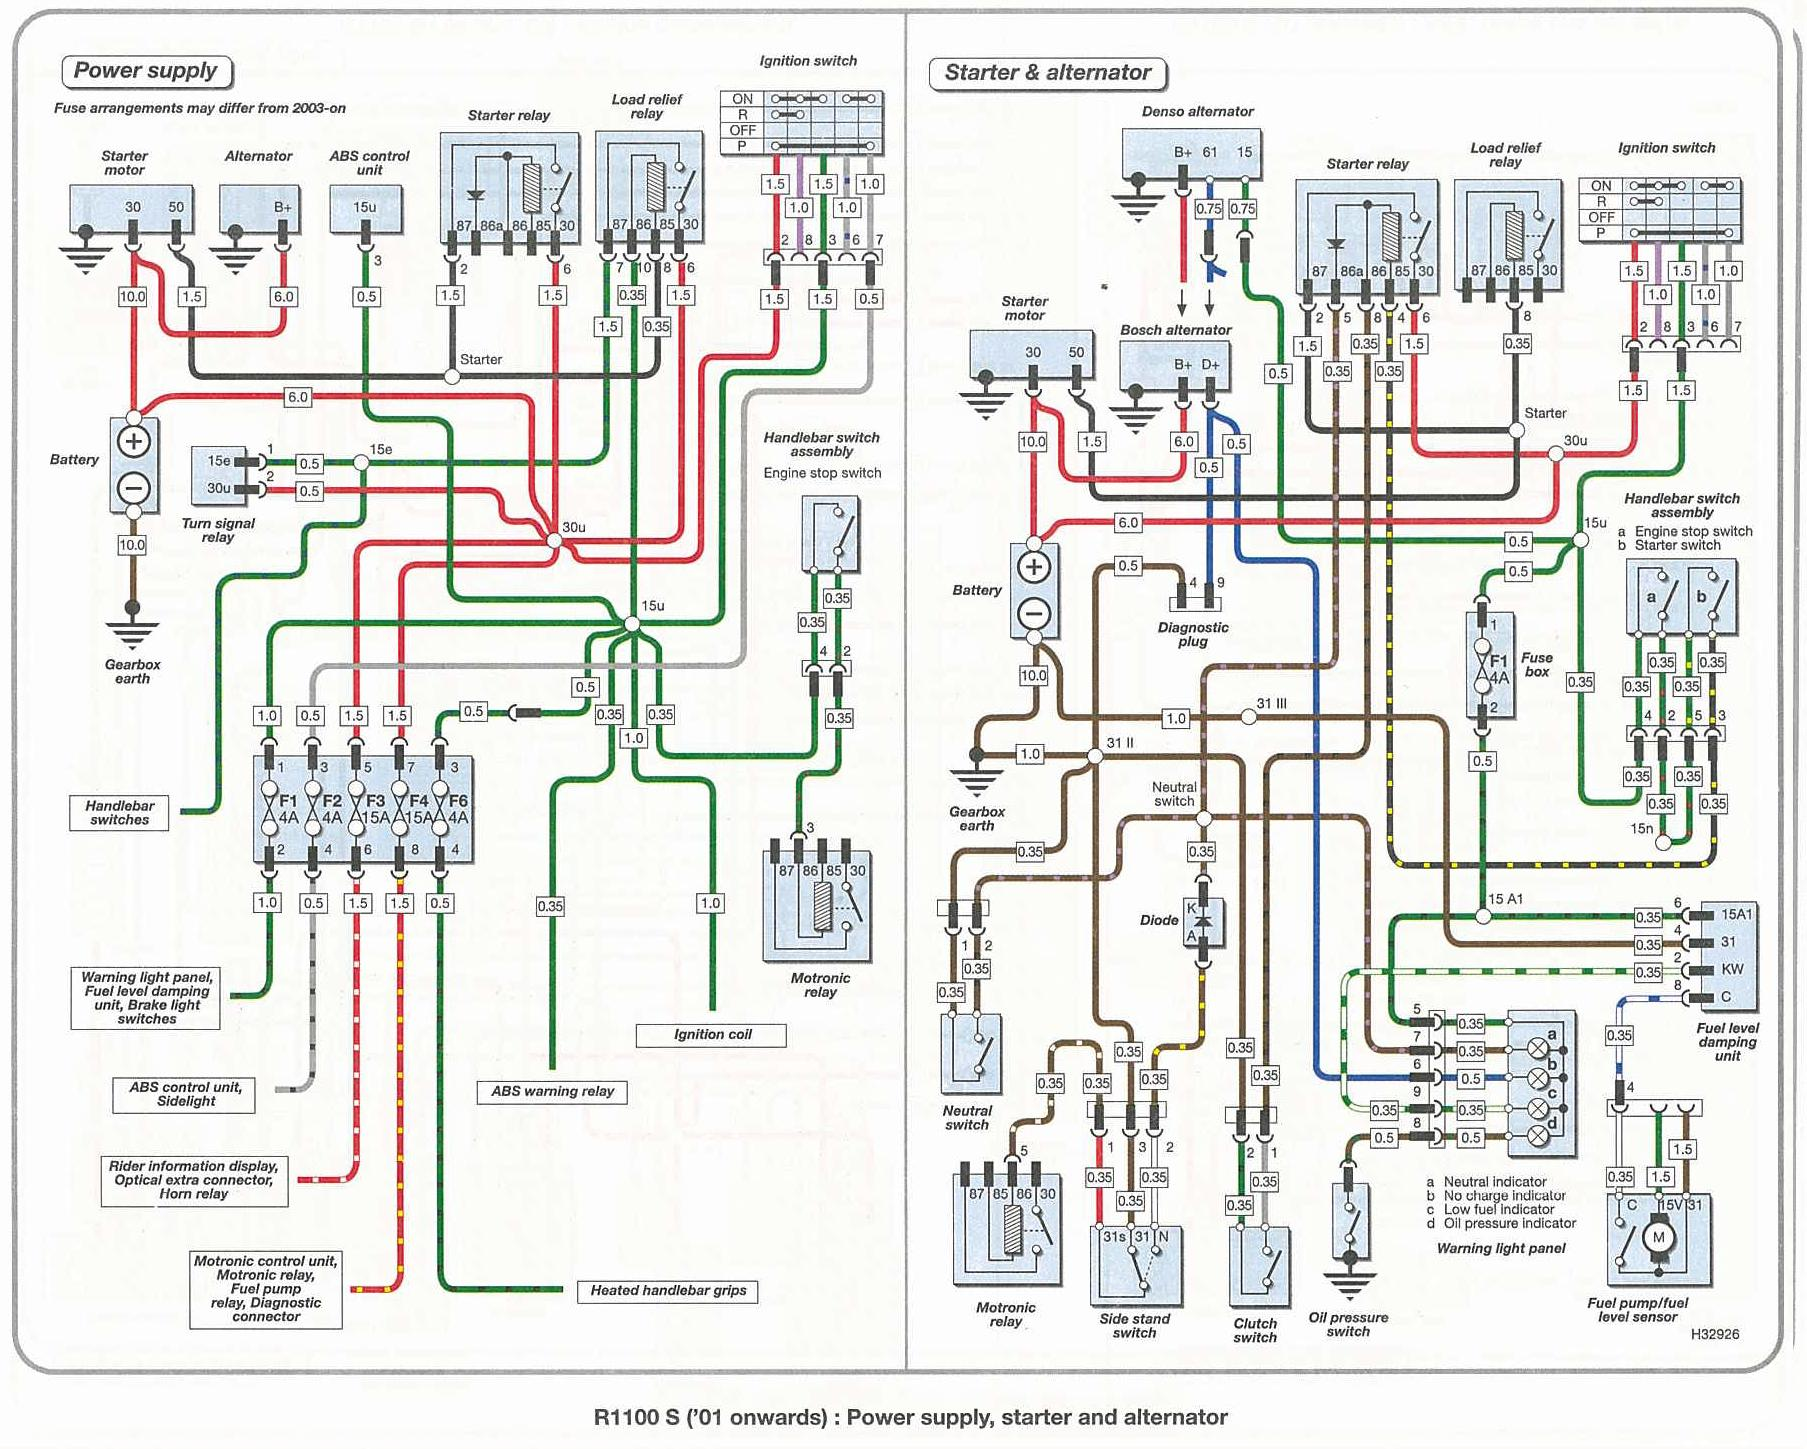 wiring05 bmw r1100s wiring diagrams bmw r1100r wiring diagram at gsmportal.co